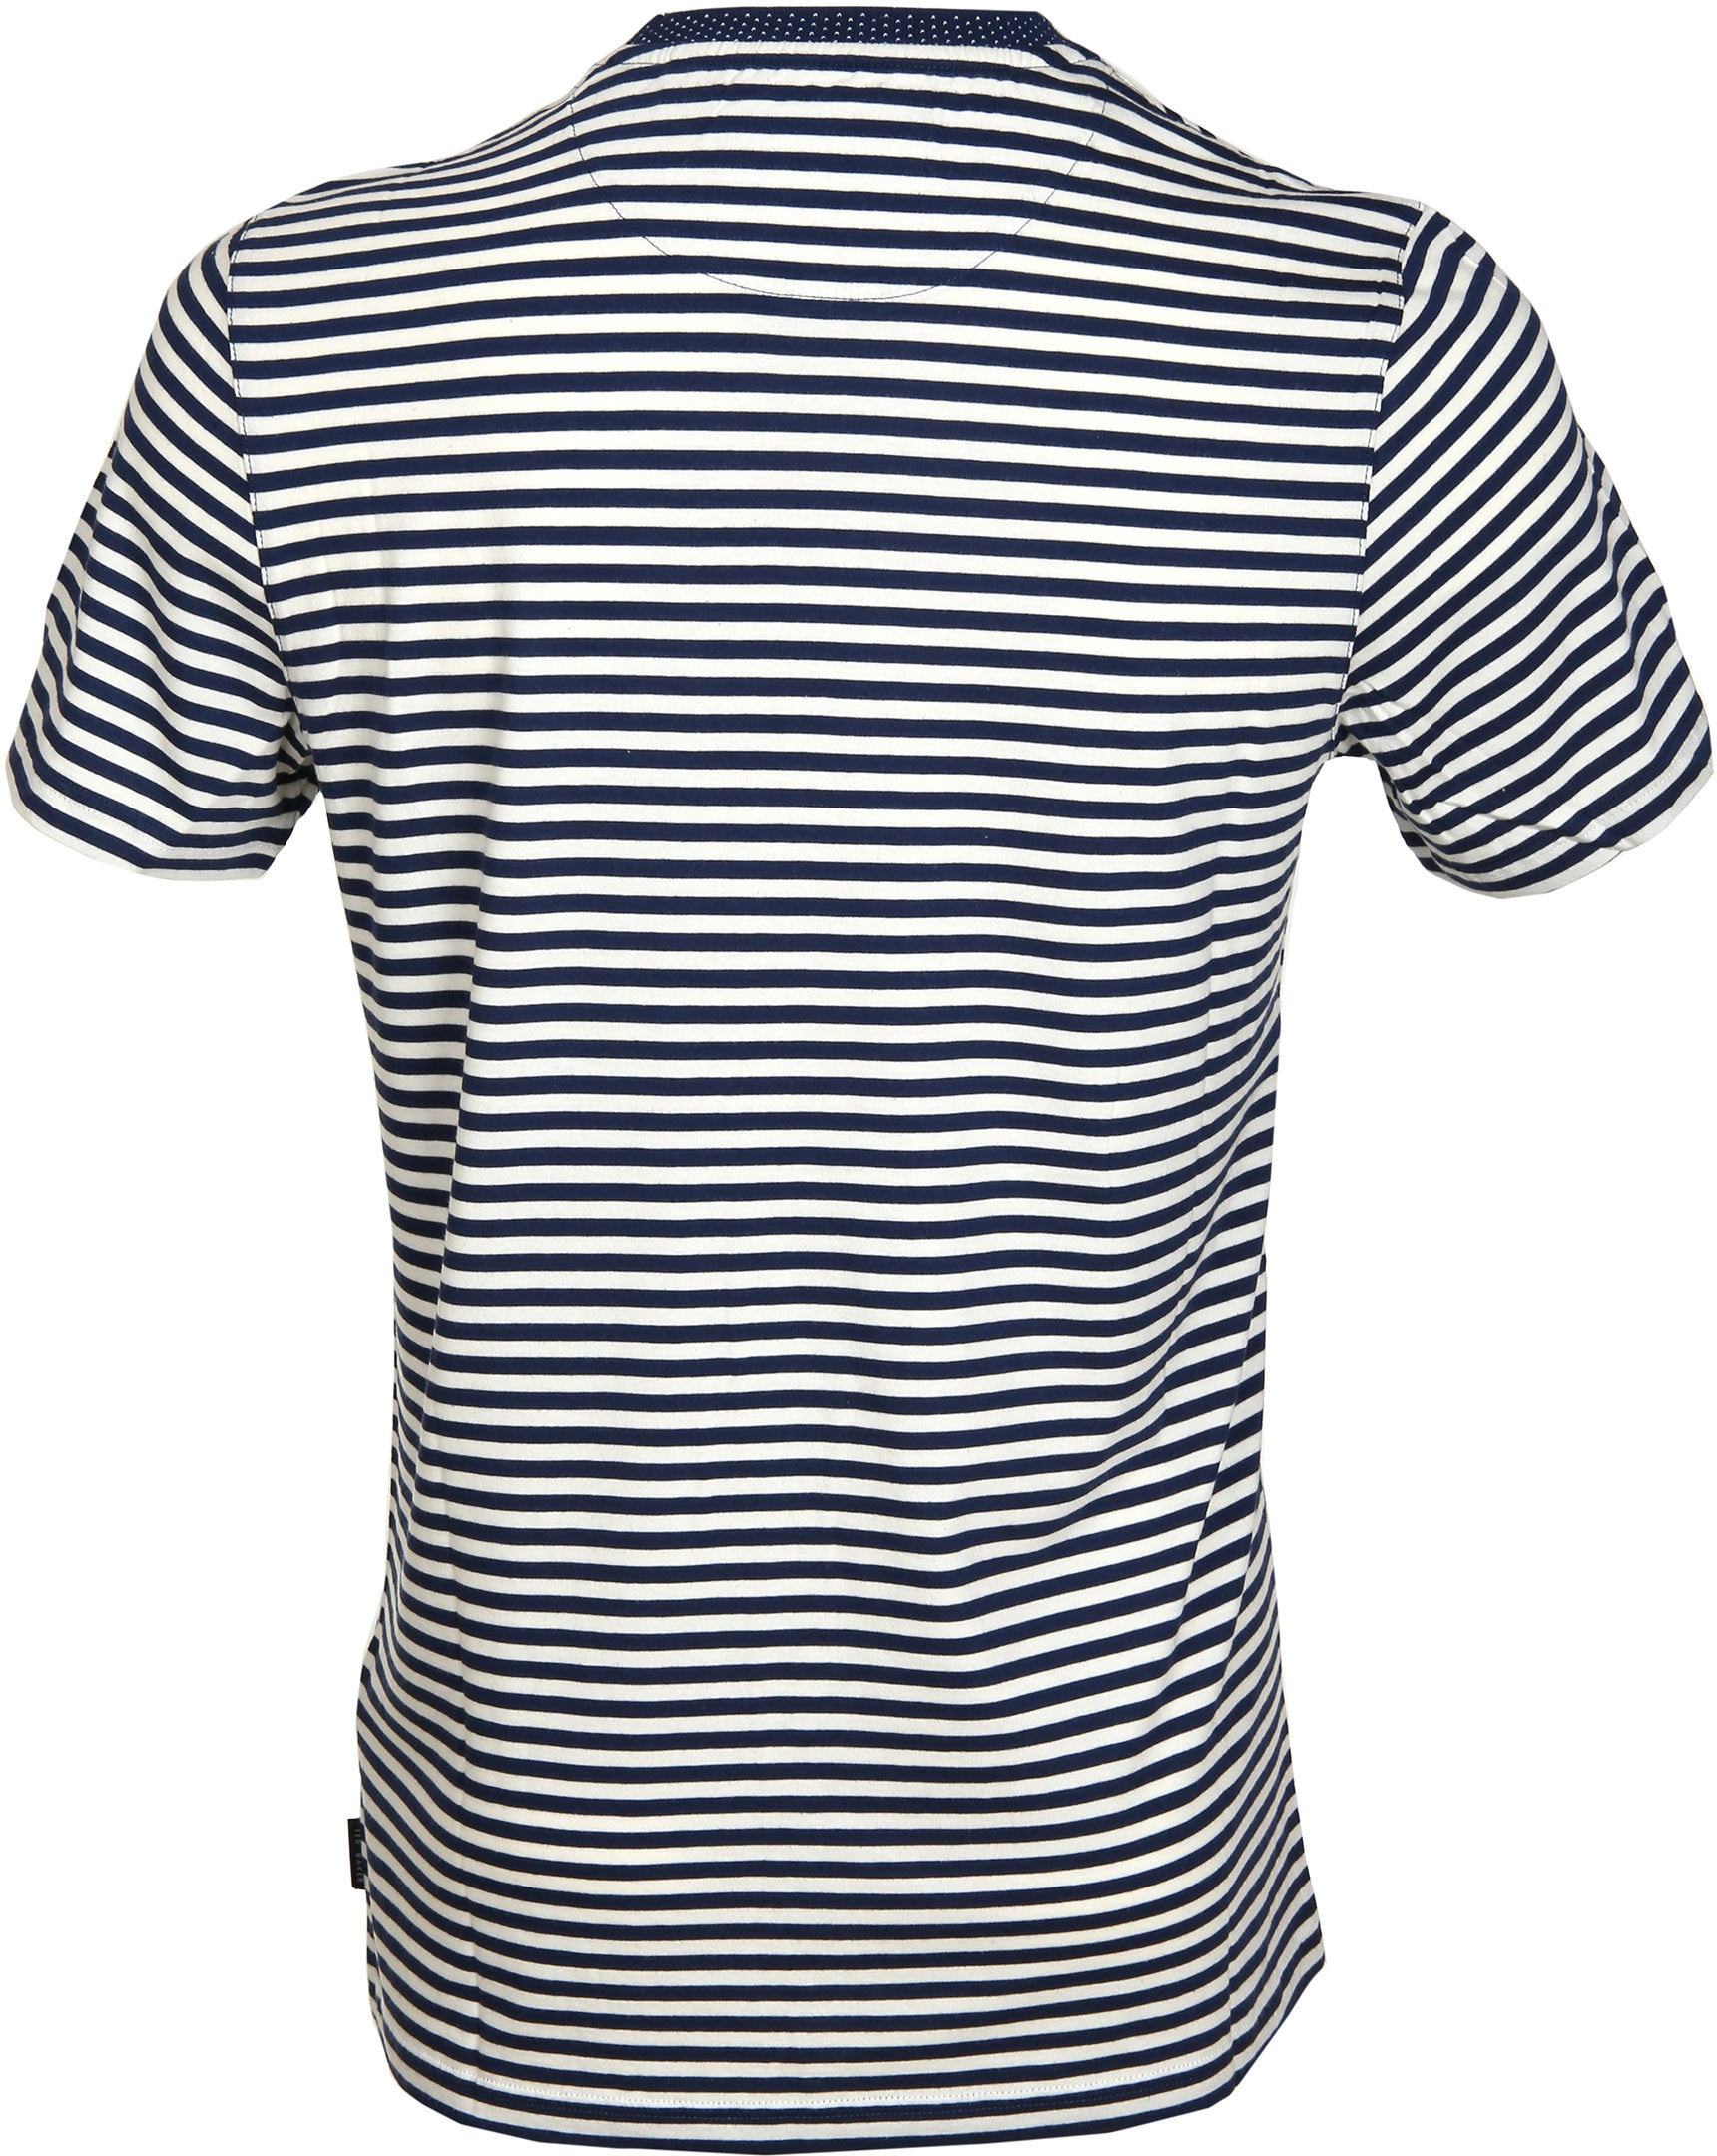 Ted Baker T-Shirt Stripe foto 2